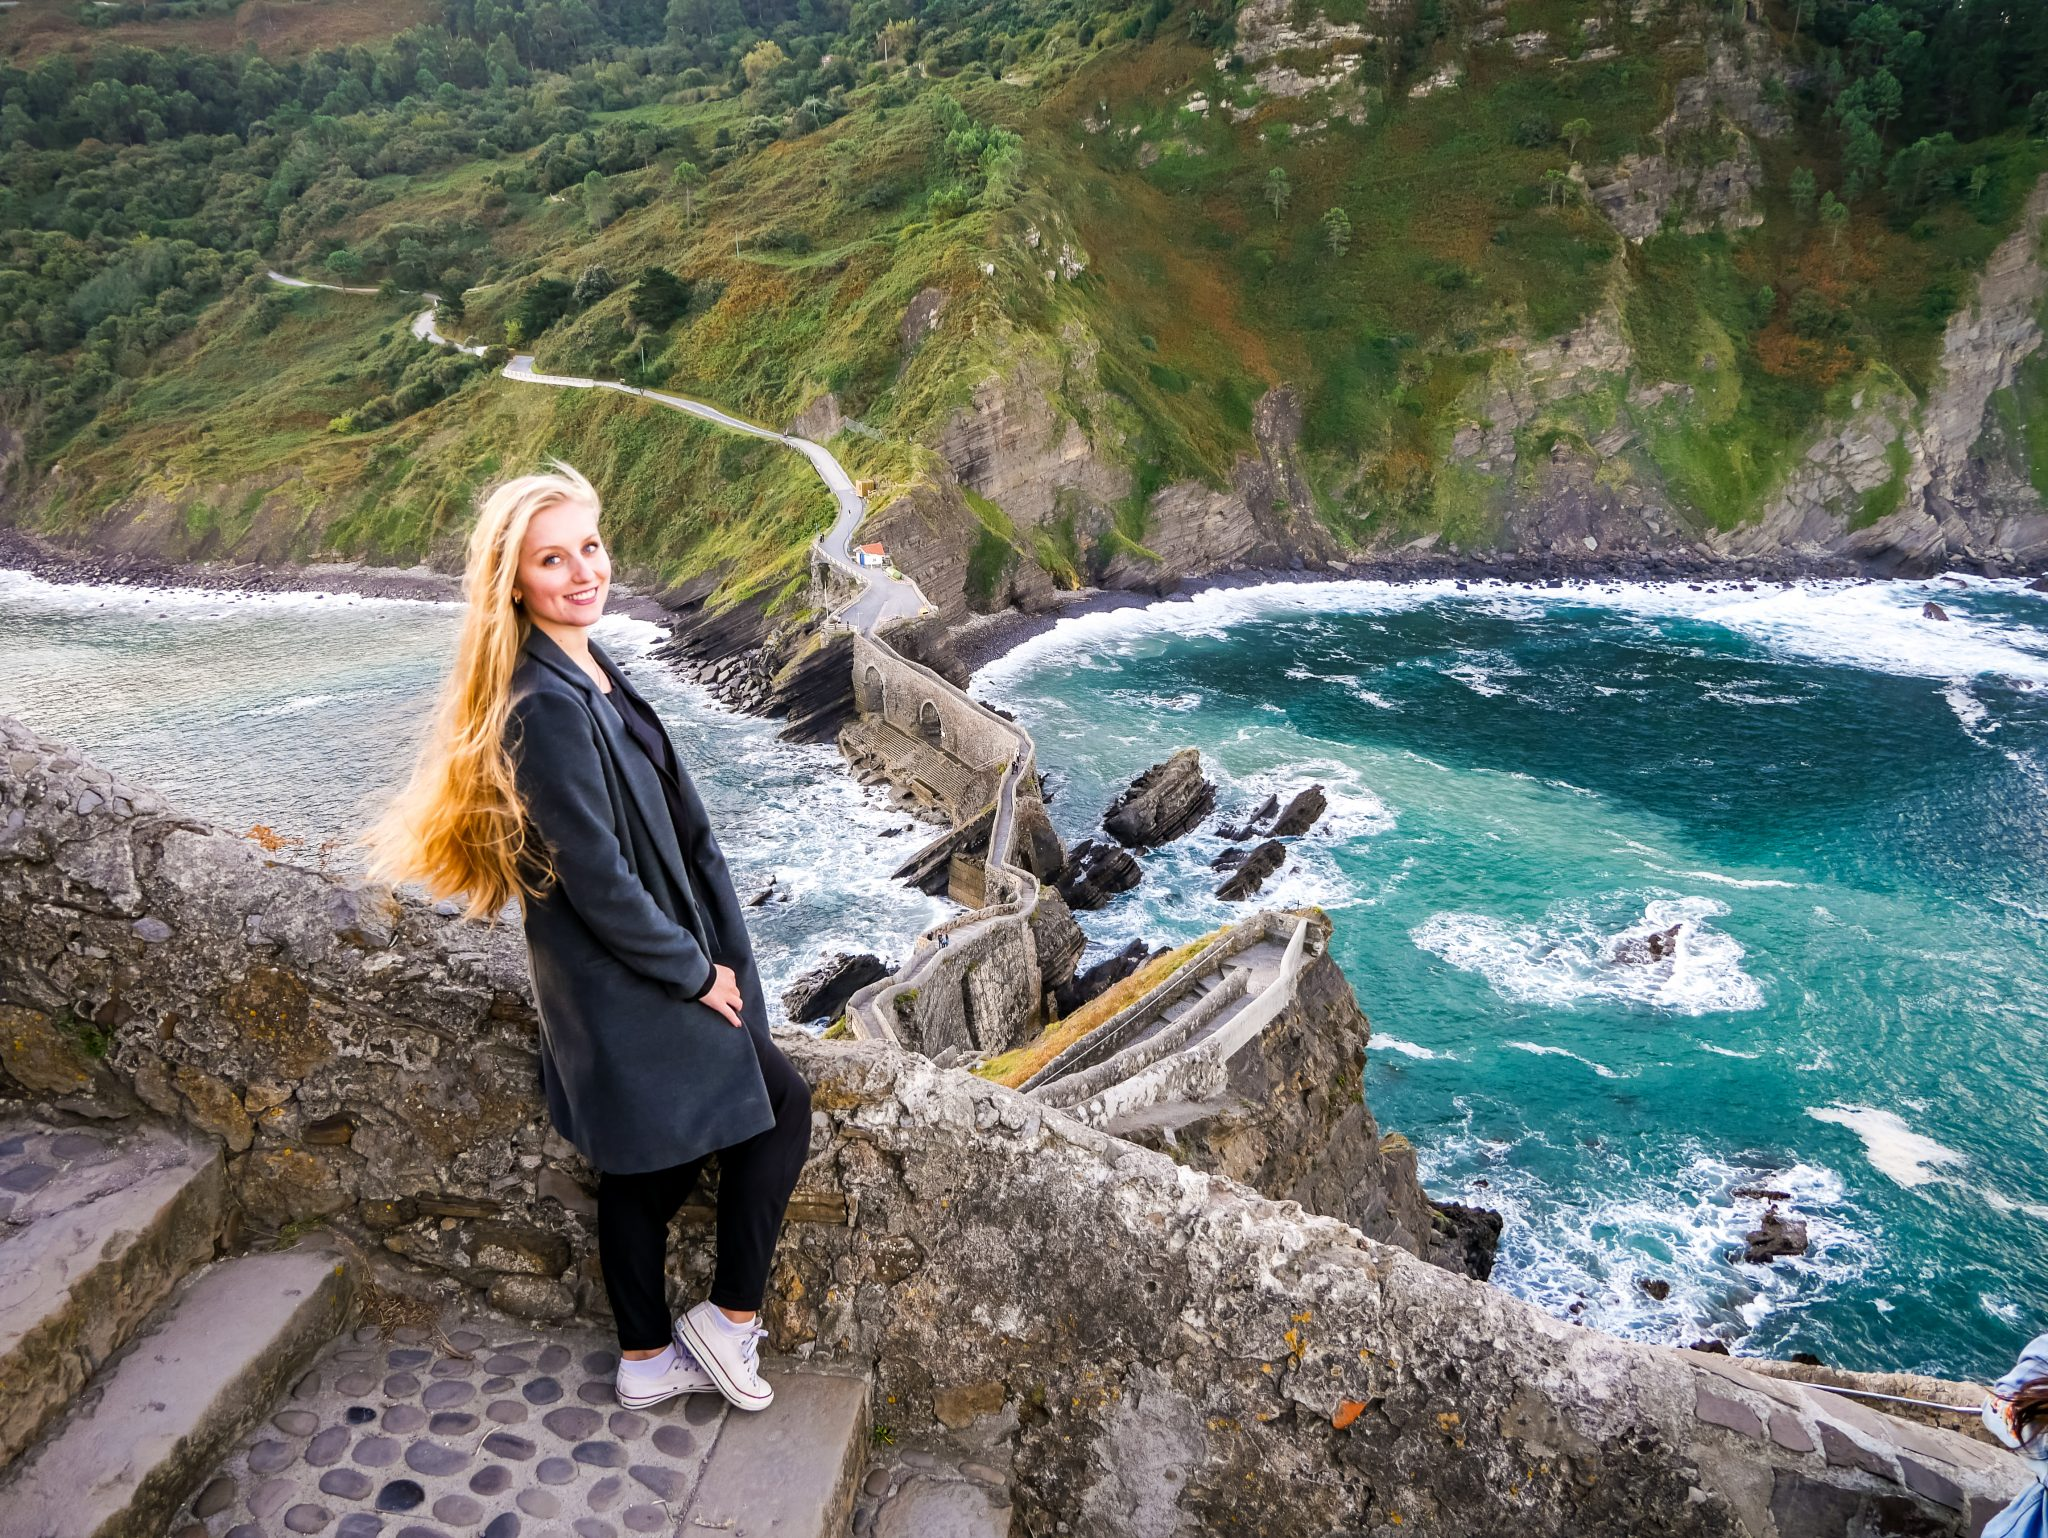 Winter is coming... Game of Thrones wurde in San Juan de Gaztelugatxe ebenfalls gedreht!